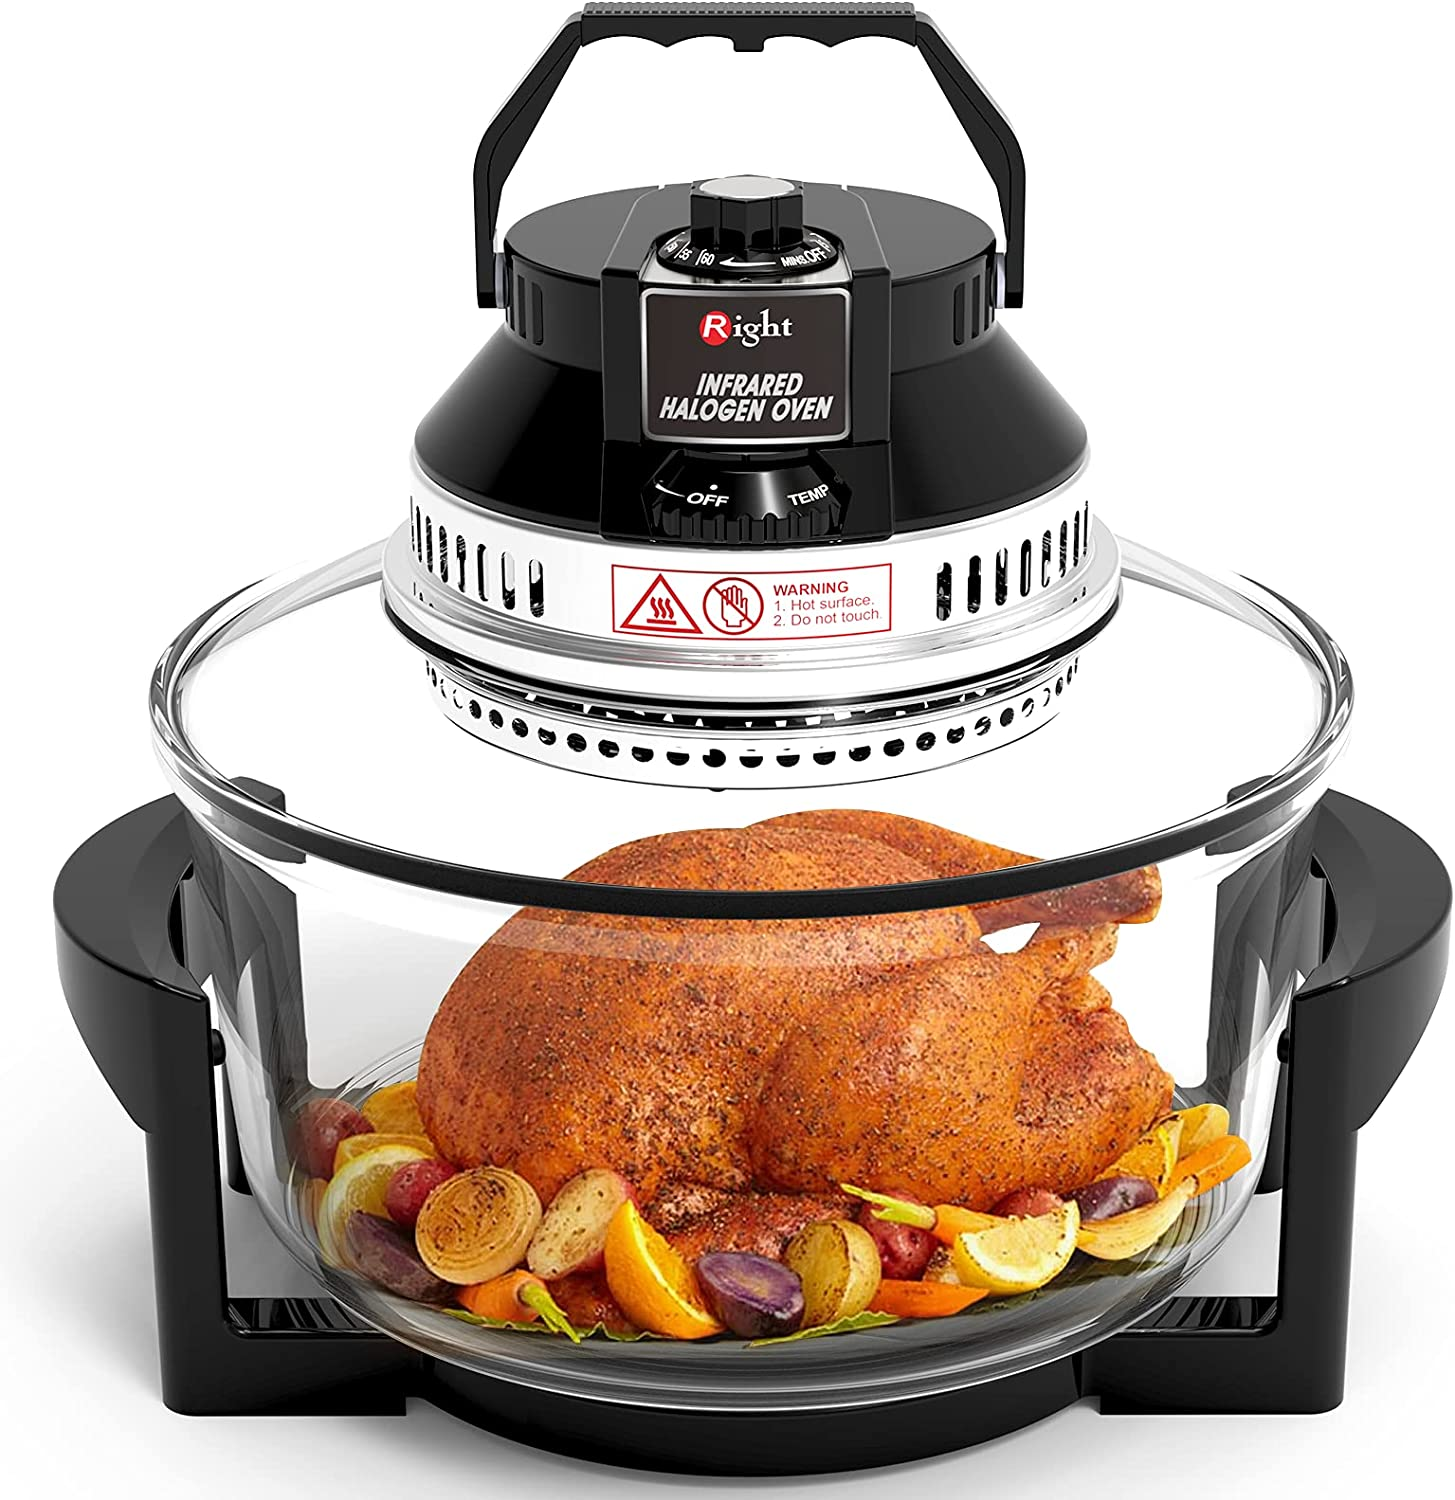 Oil Free Air Fryer RIGHT Large Infrared Halogen Convection Oven 19 Quart